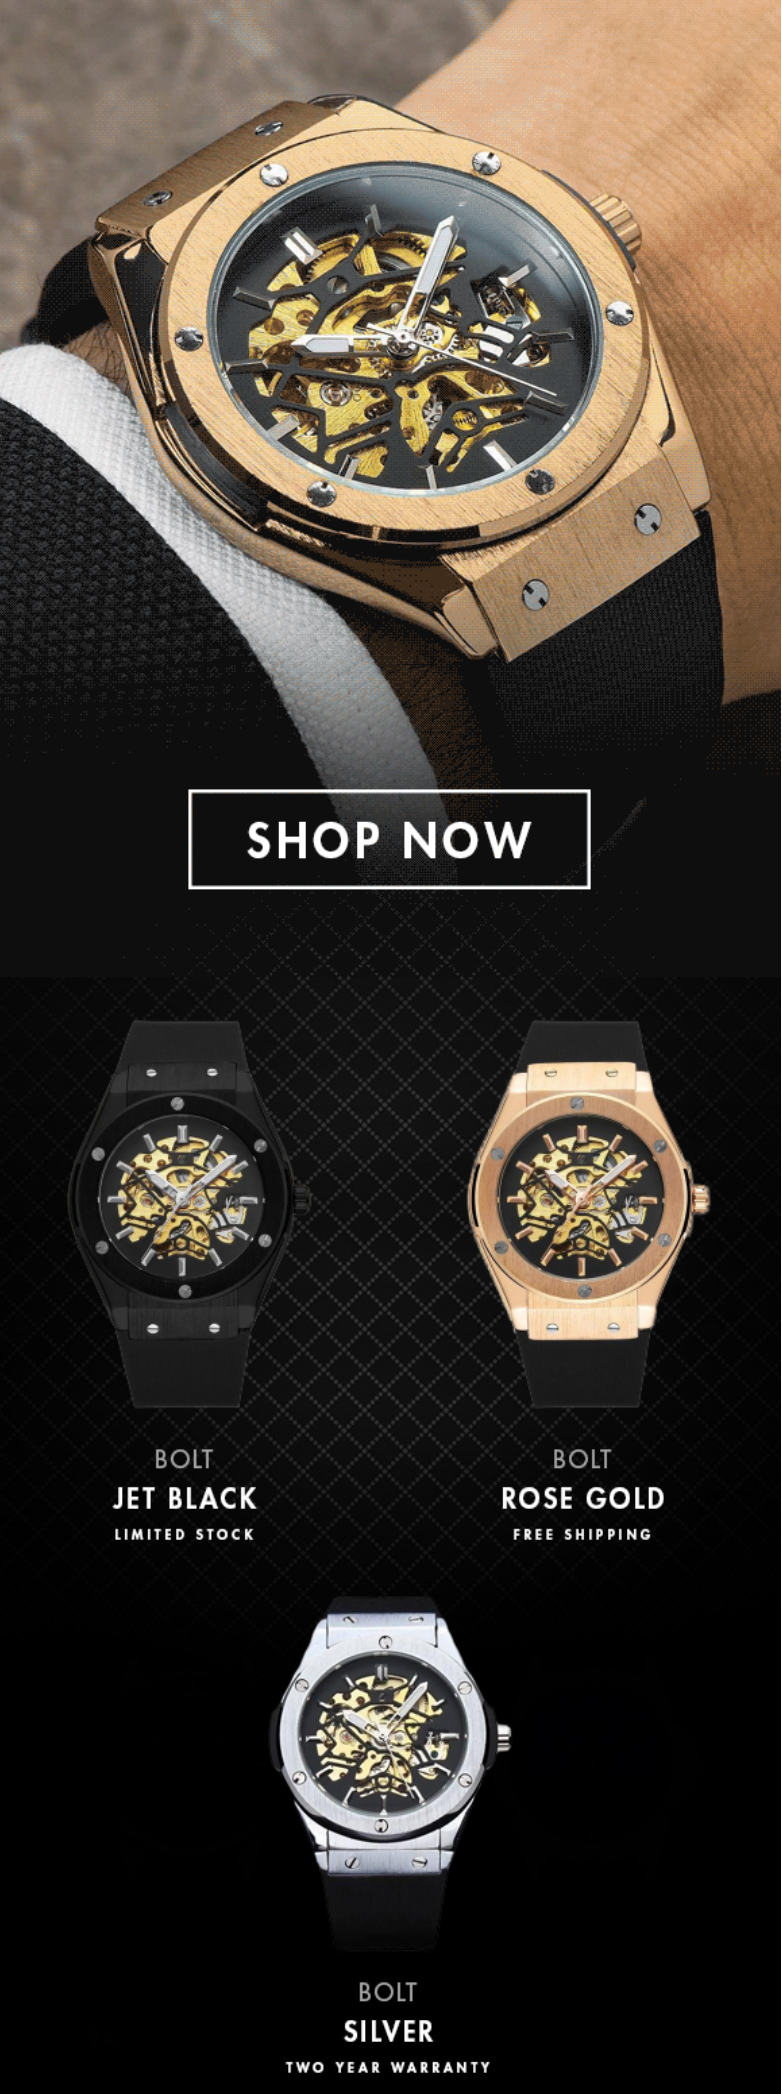 Timepieces 50Off Lord Promo August 2019 Codesamp; Discount rxsQhCdt